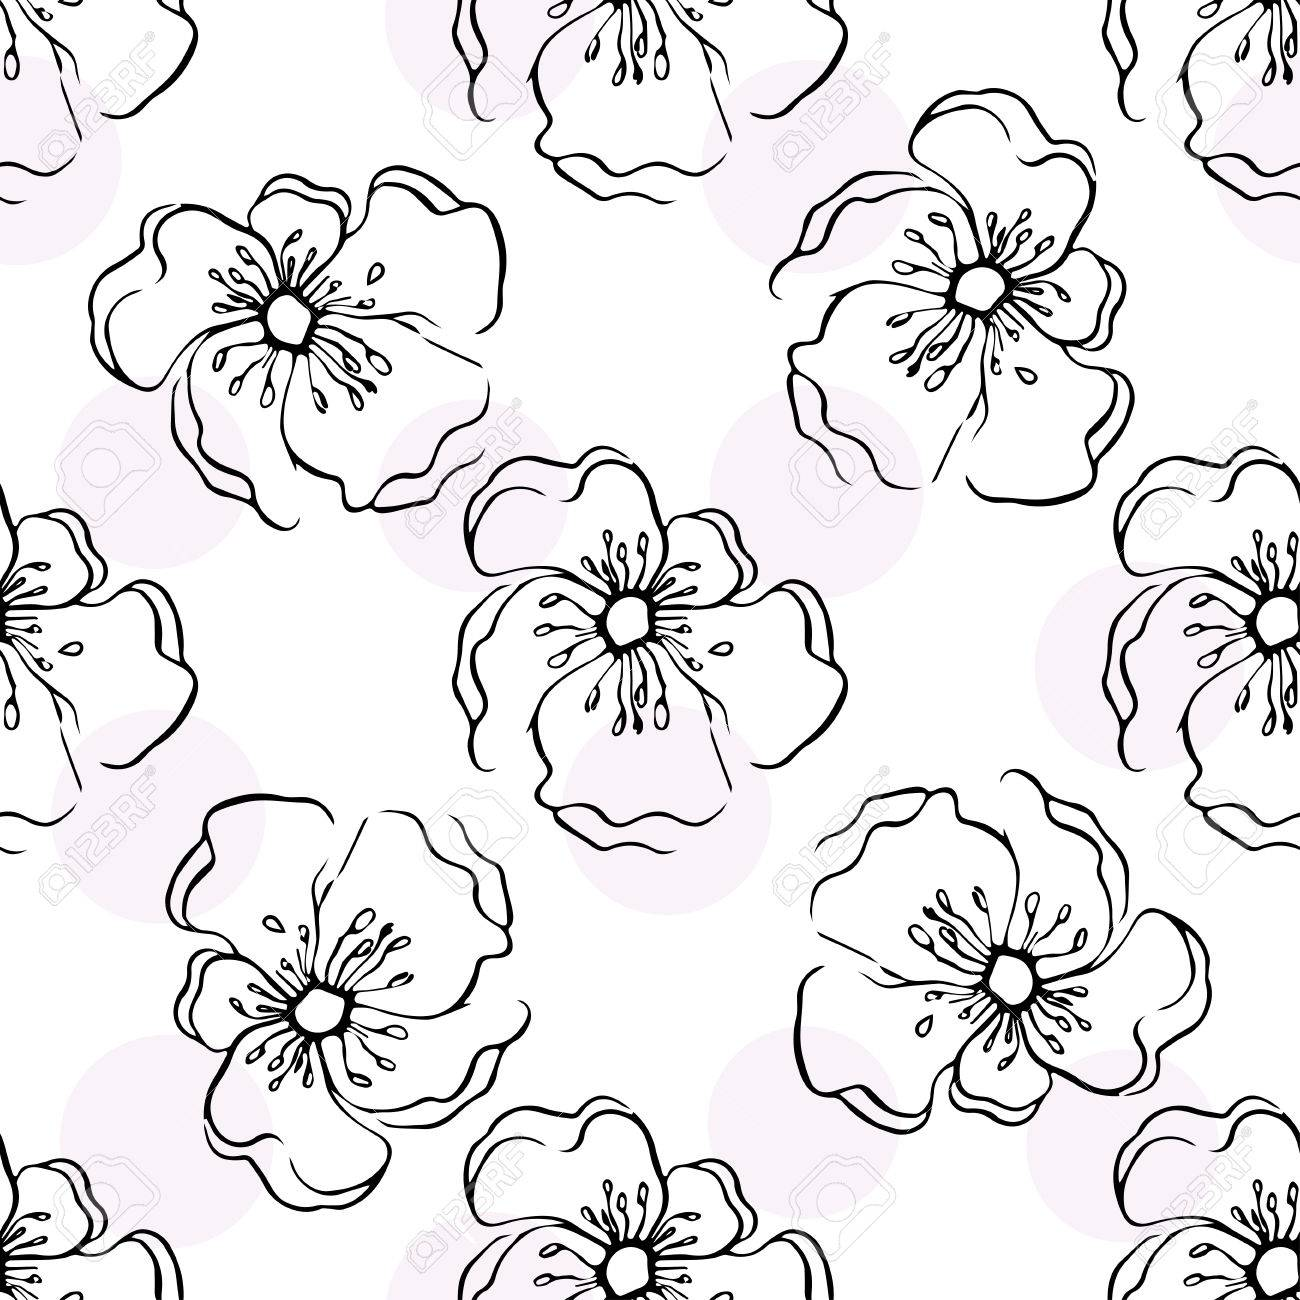 Repeating Modern Floral Background Pattern Seamless Floral Wallpaper Royalty Free Cliparts Vectors And Stock Illustration Image 58324300